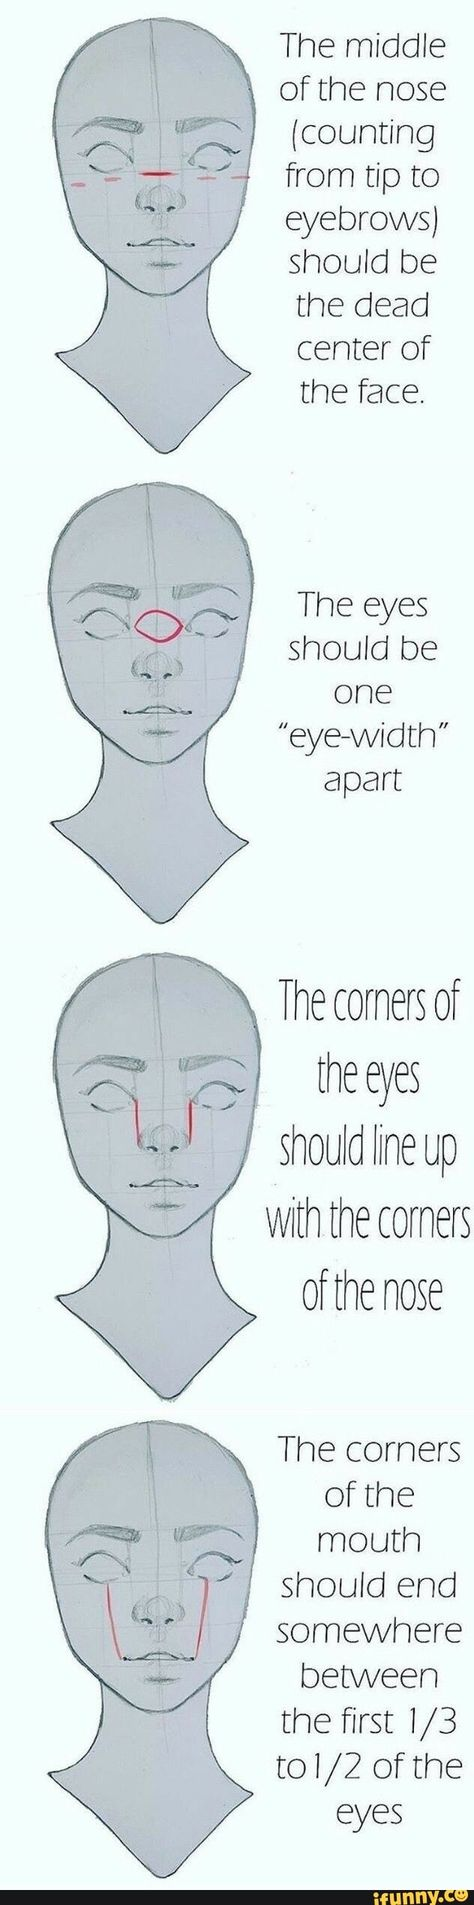 """The middle of the nose (counting from tip to eyebrows) should be the dead center of the face. The eyes should be one """"eye-width"""" apart – popular memes on the site iFunny.co #humanbody #animalsnature #the #middle #nose #tip #should #center #face #eyes #eye #width #apart #pic"""